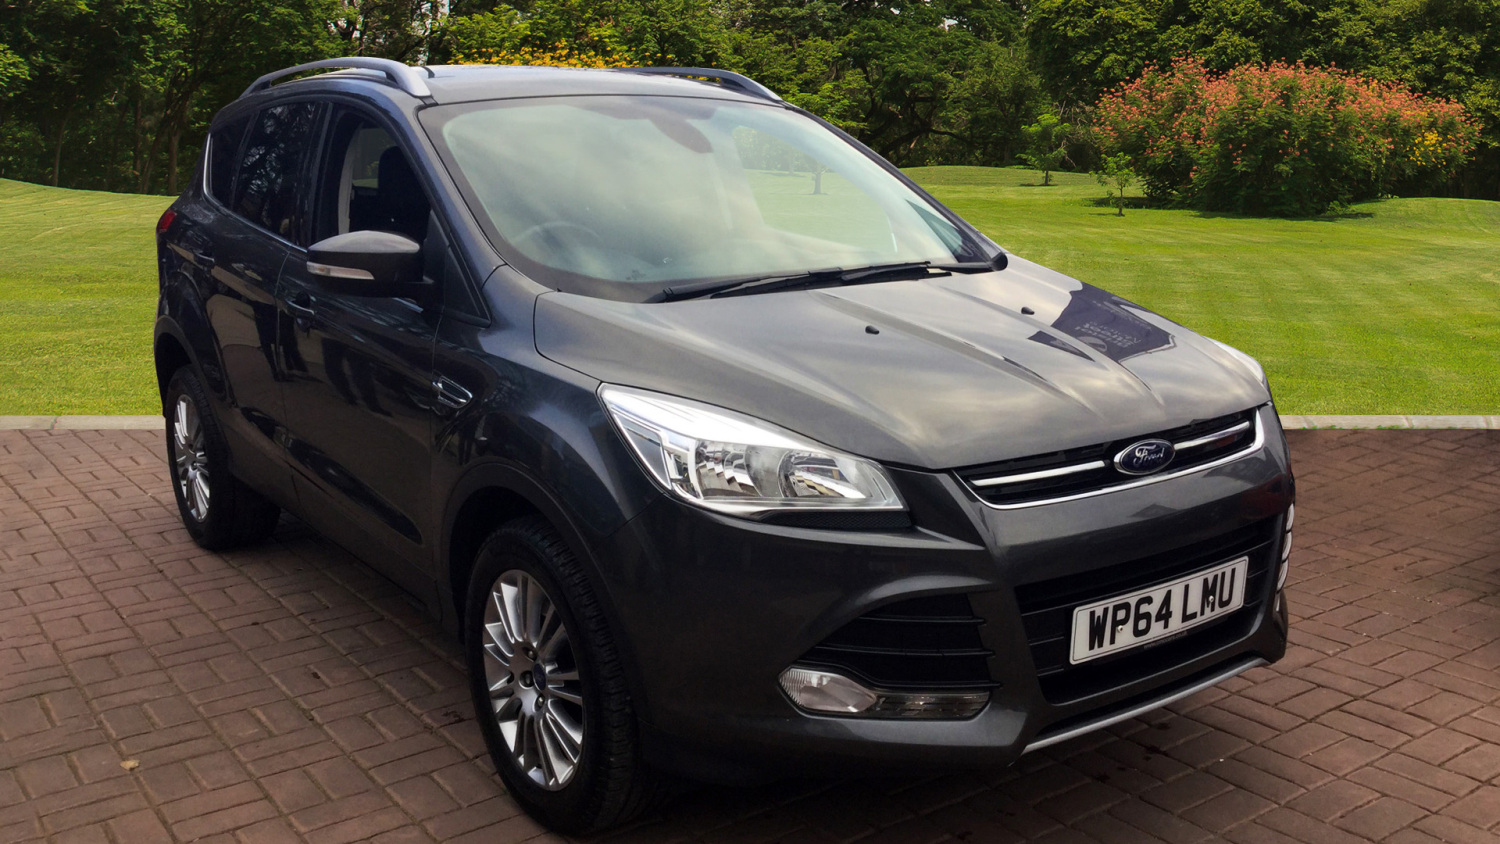 used ford kuga 2 0 tdci titanium 5dr 2wd diesel estate for sale in scotland macklin motors. Black Bedroom Furniture Sets. Home Design Ideas